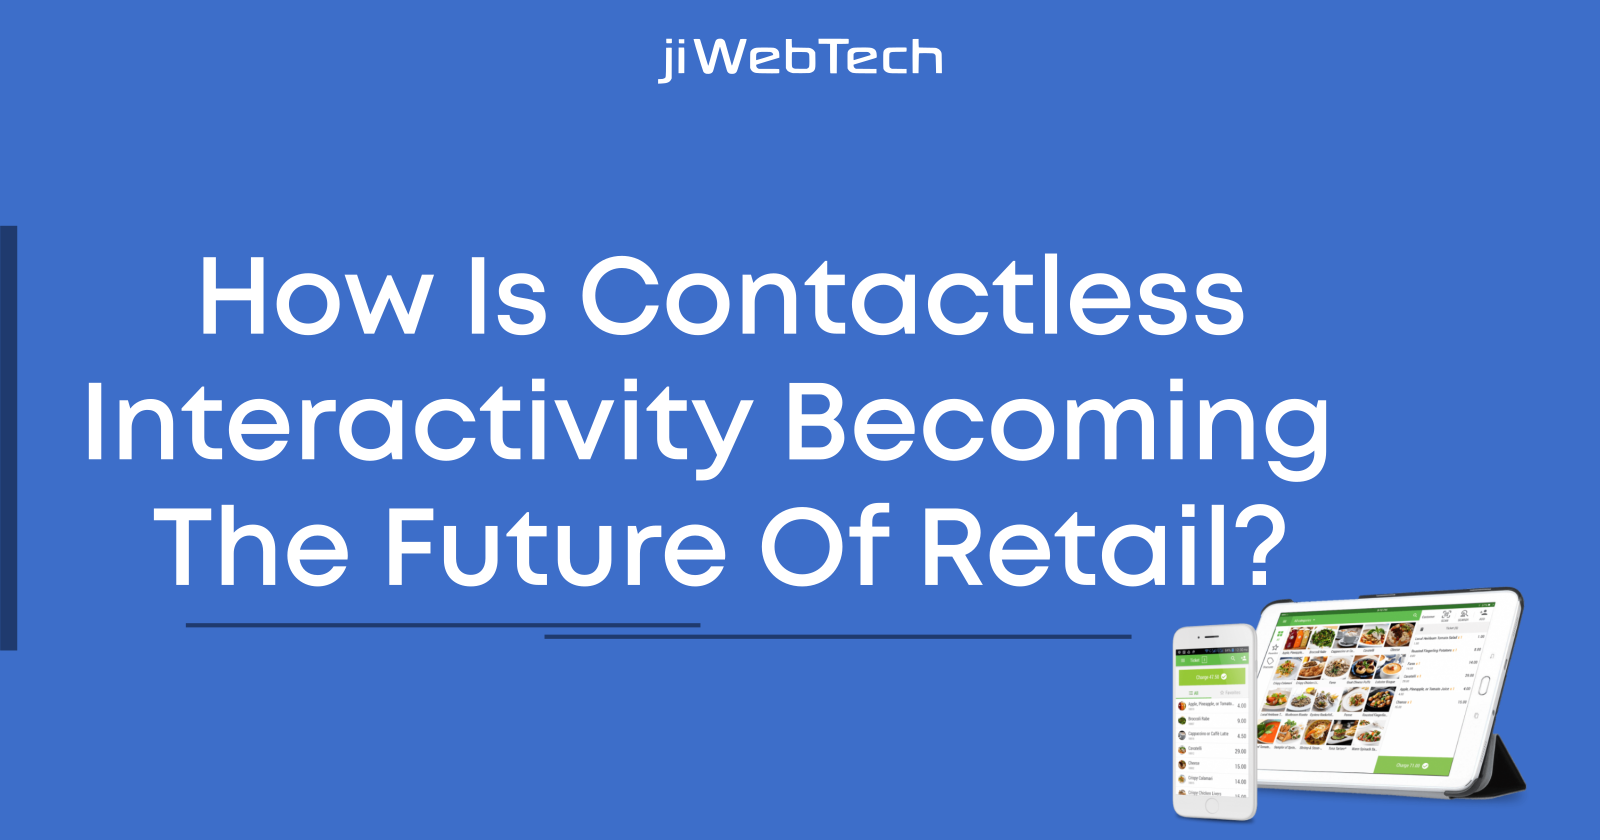 How is Contactless Interactivity becoming the future of Retail?